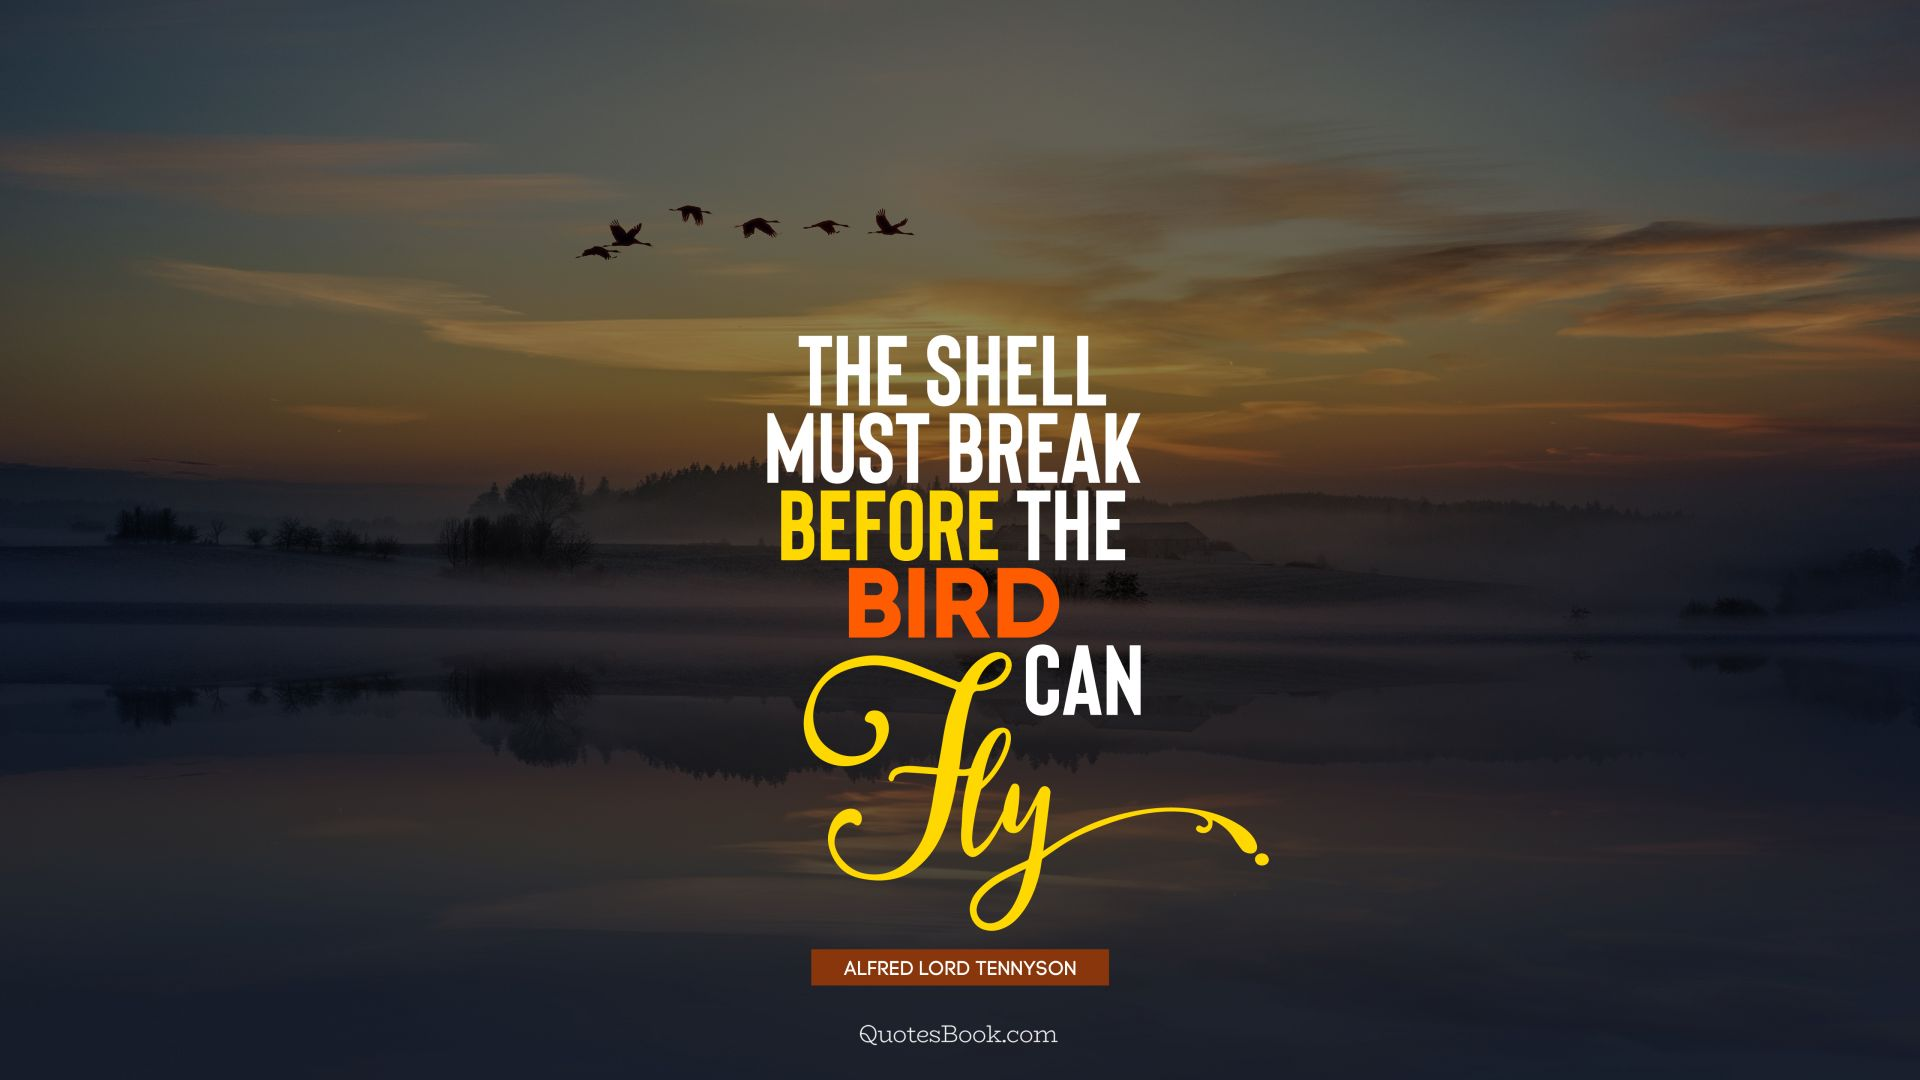 The shell must break before the bird can fly. - Quote by Alfred Lord Tennyson